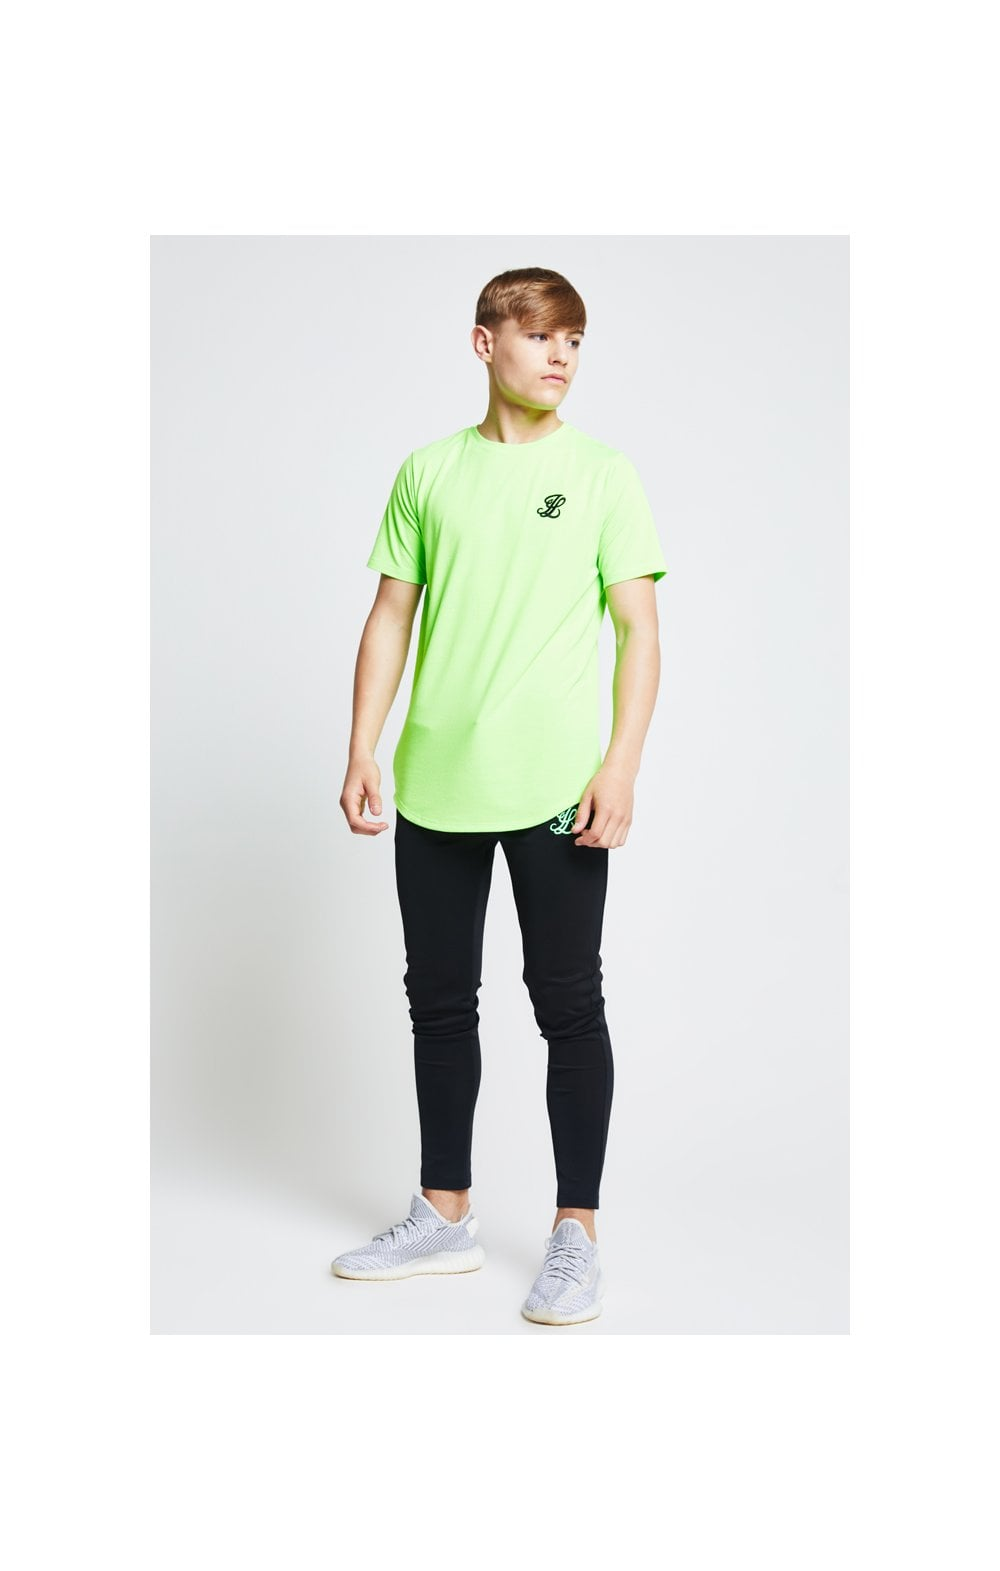 Illusive London S/S Taped Tee – Neon Green (4)